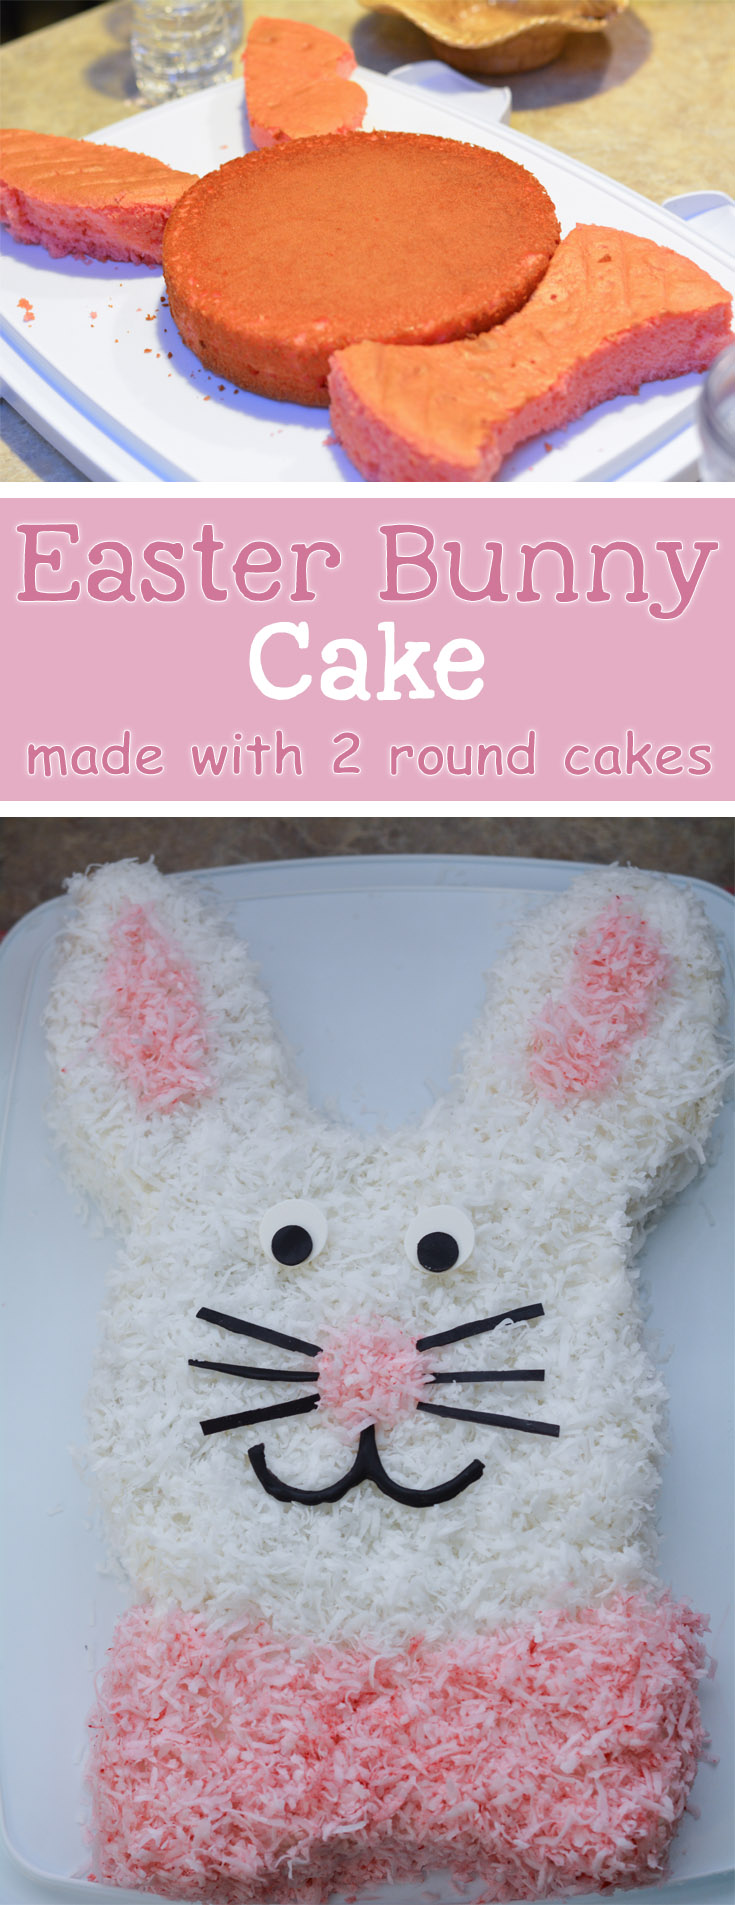 Easy Easter Bunny Cake - Mommy's Fabulous Finds